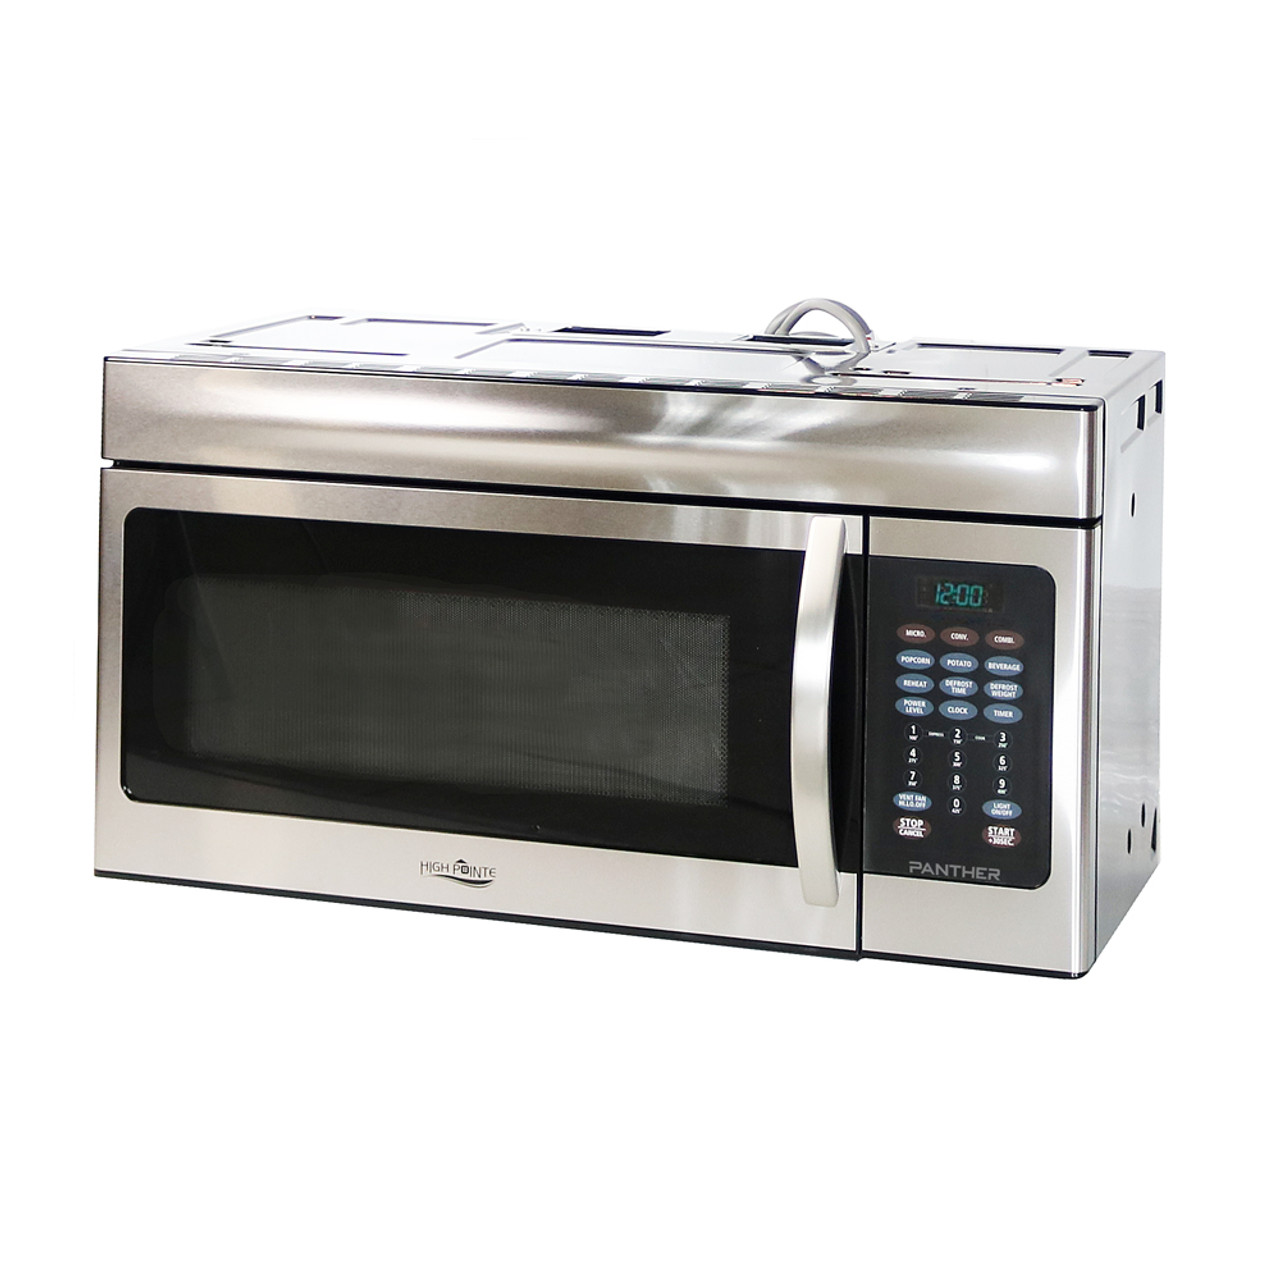 high pointe 520ec942k6 rv over the range convection microwave 1 5 c f